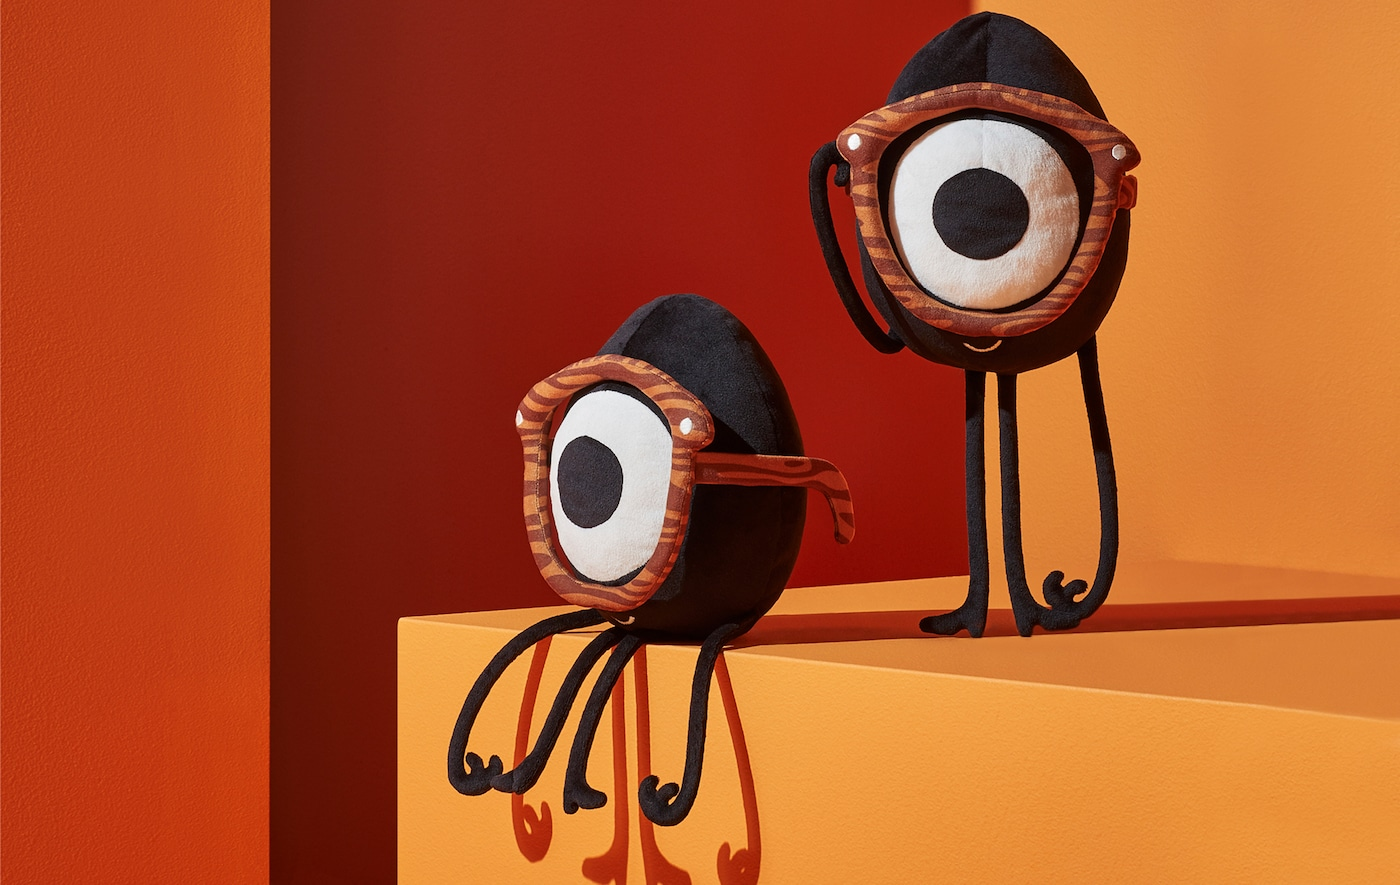 Two egg-shaped soft toys, each with one eye and a monocle, on an orange and red backdrop.